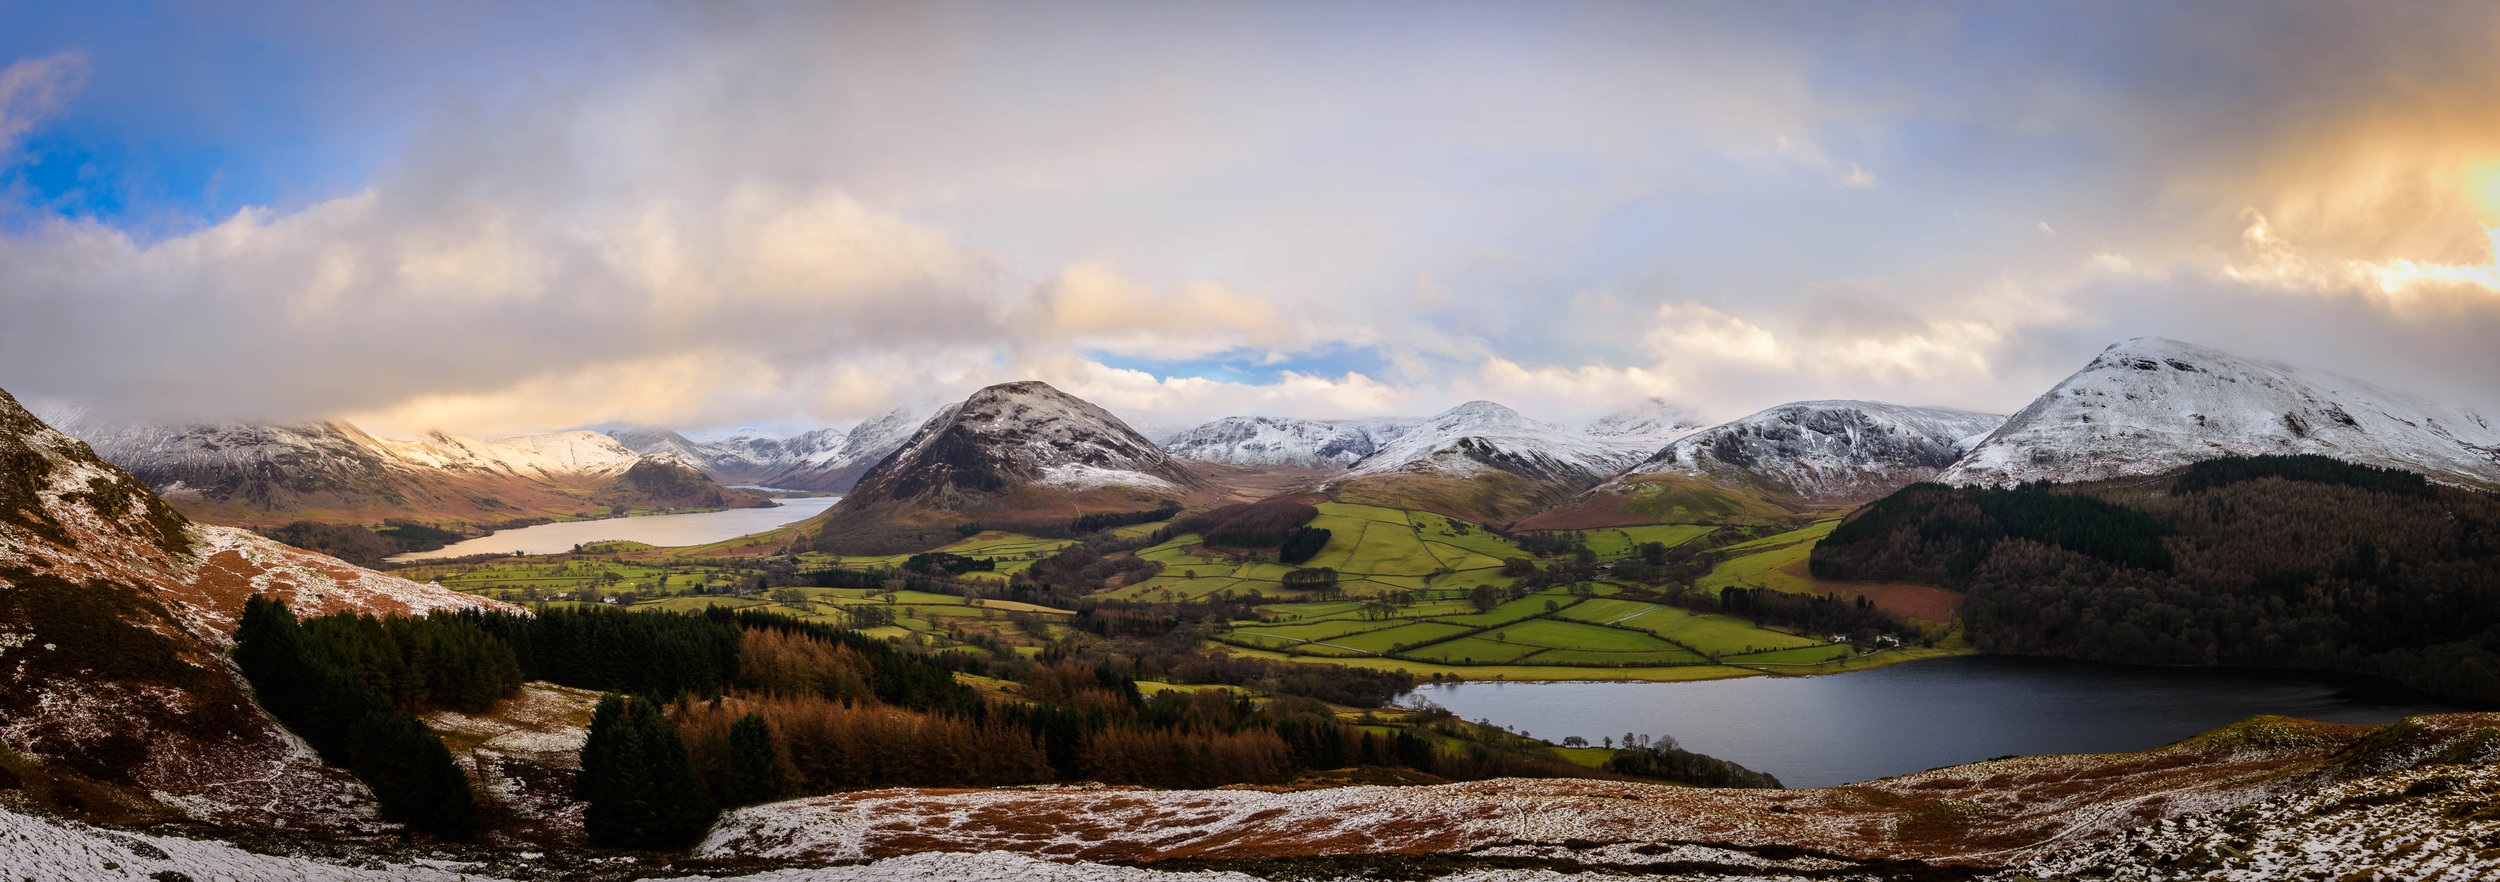 Panoramic view from Darling Fell. Including views of Grasmoor, Crummock Water, Mellbreak, Loweswater, Hen Combe